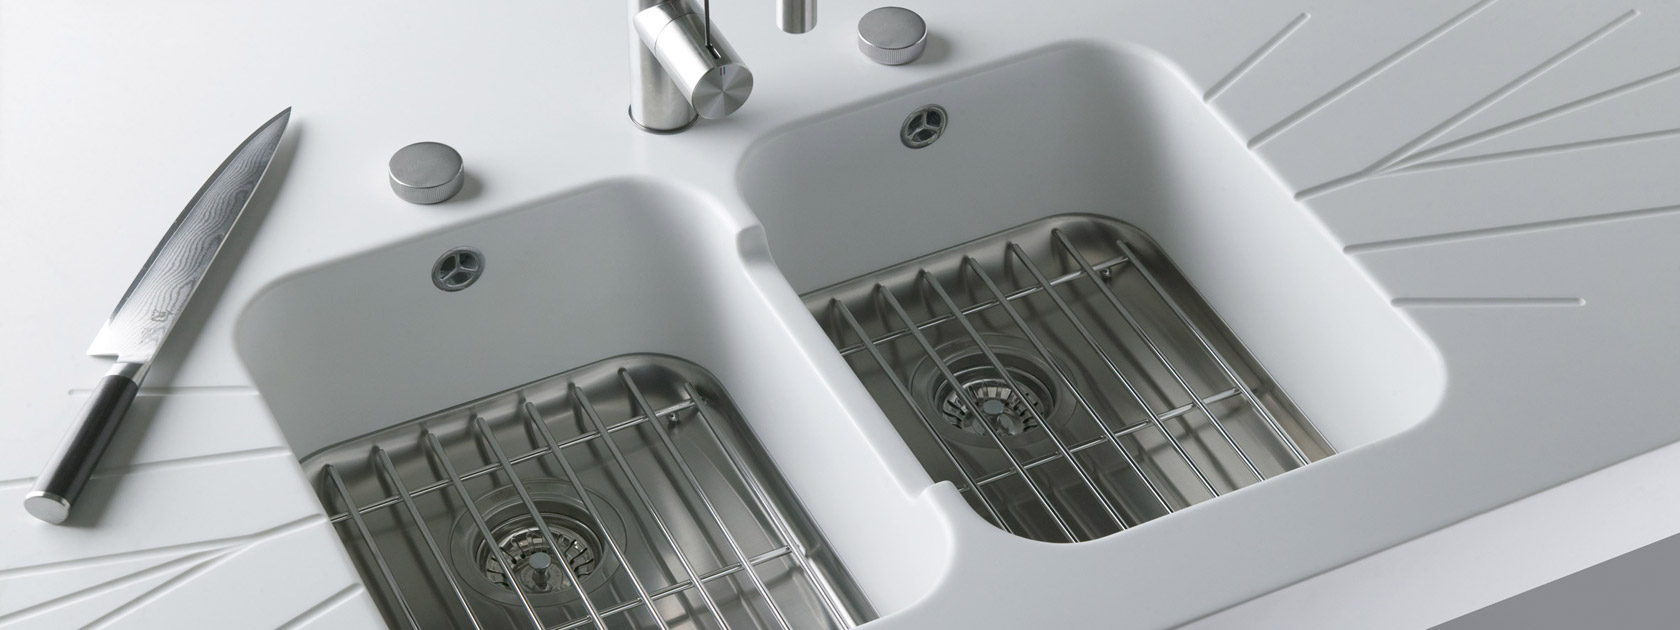 MIXA Sinks, seamless stainless steal flow from your Corian worktop